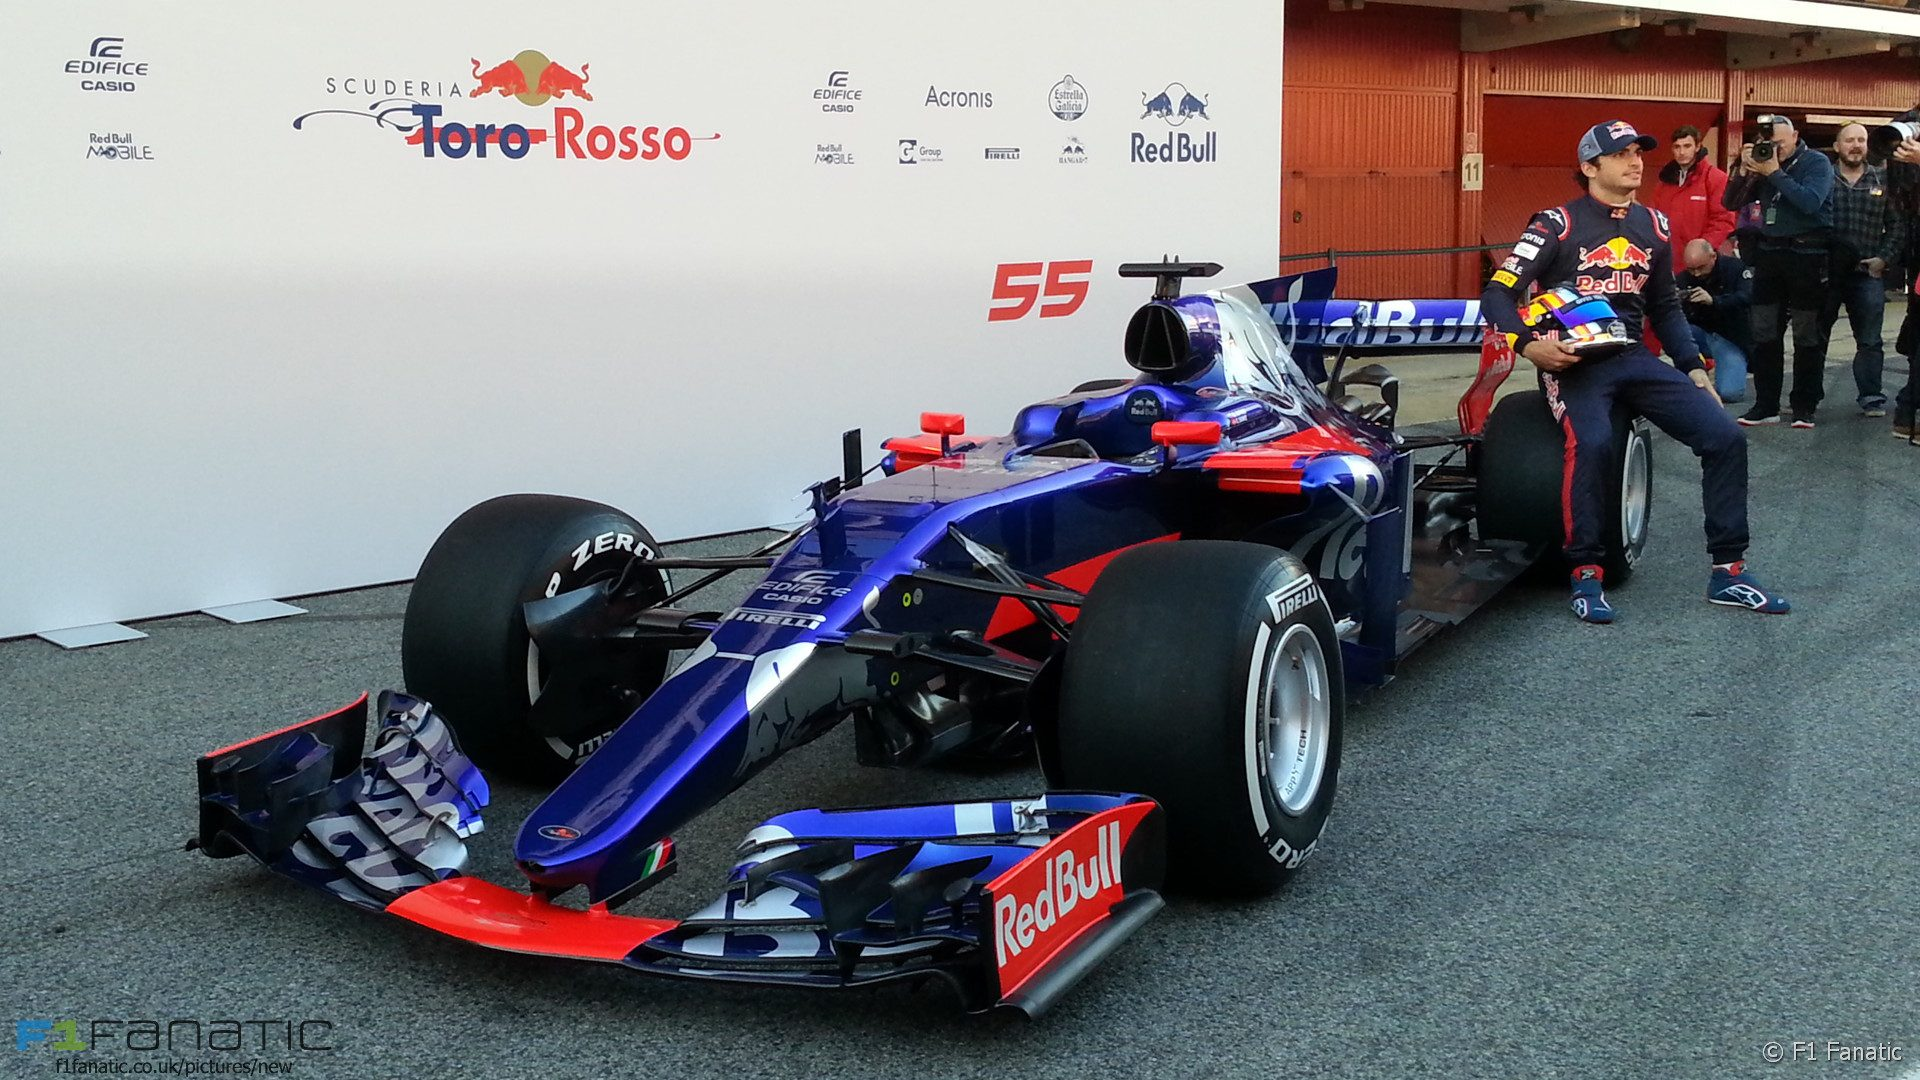 toro rosso confirms launch on first day of testing racefans. Black Bedroom Furniture Sets. Home Design Ideas